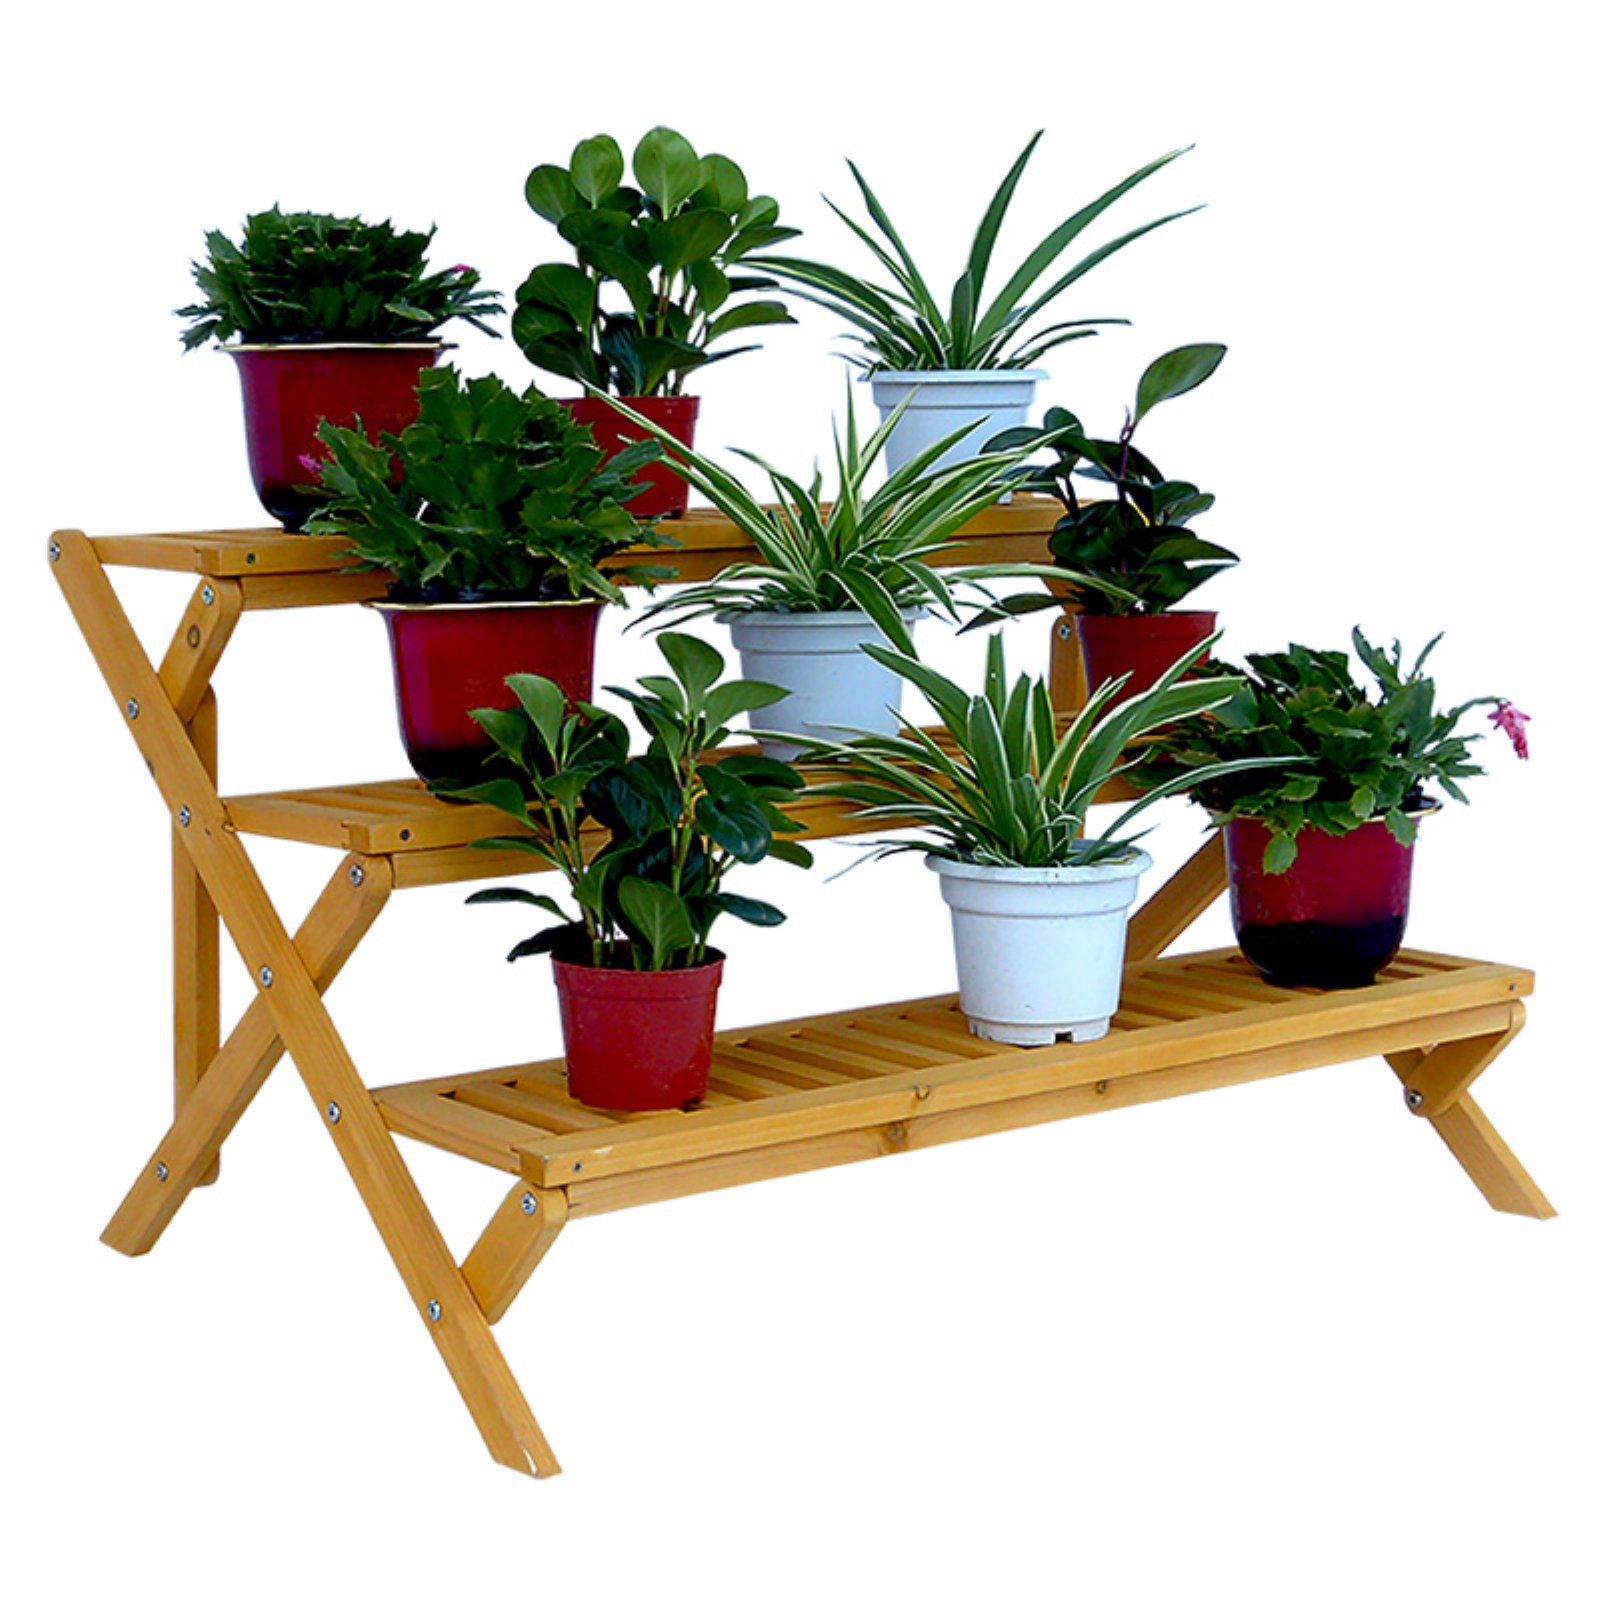 Leisure Season 3 Tier Step Plant Stand by Leisure Season Ltd